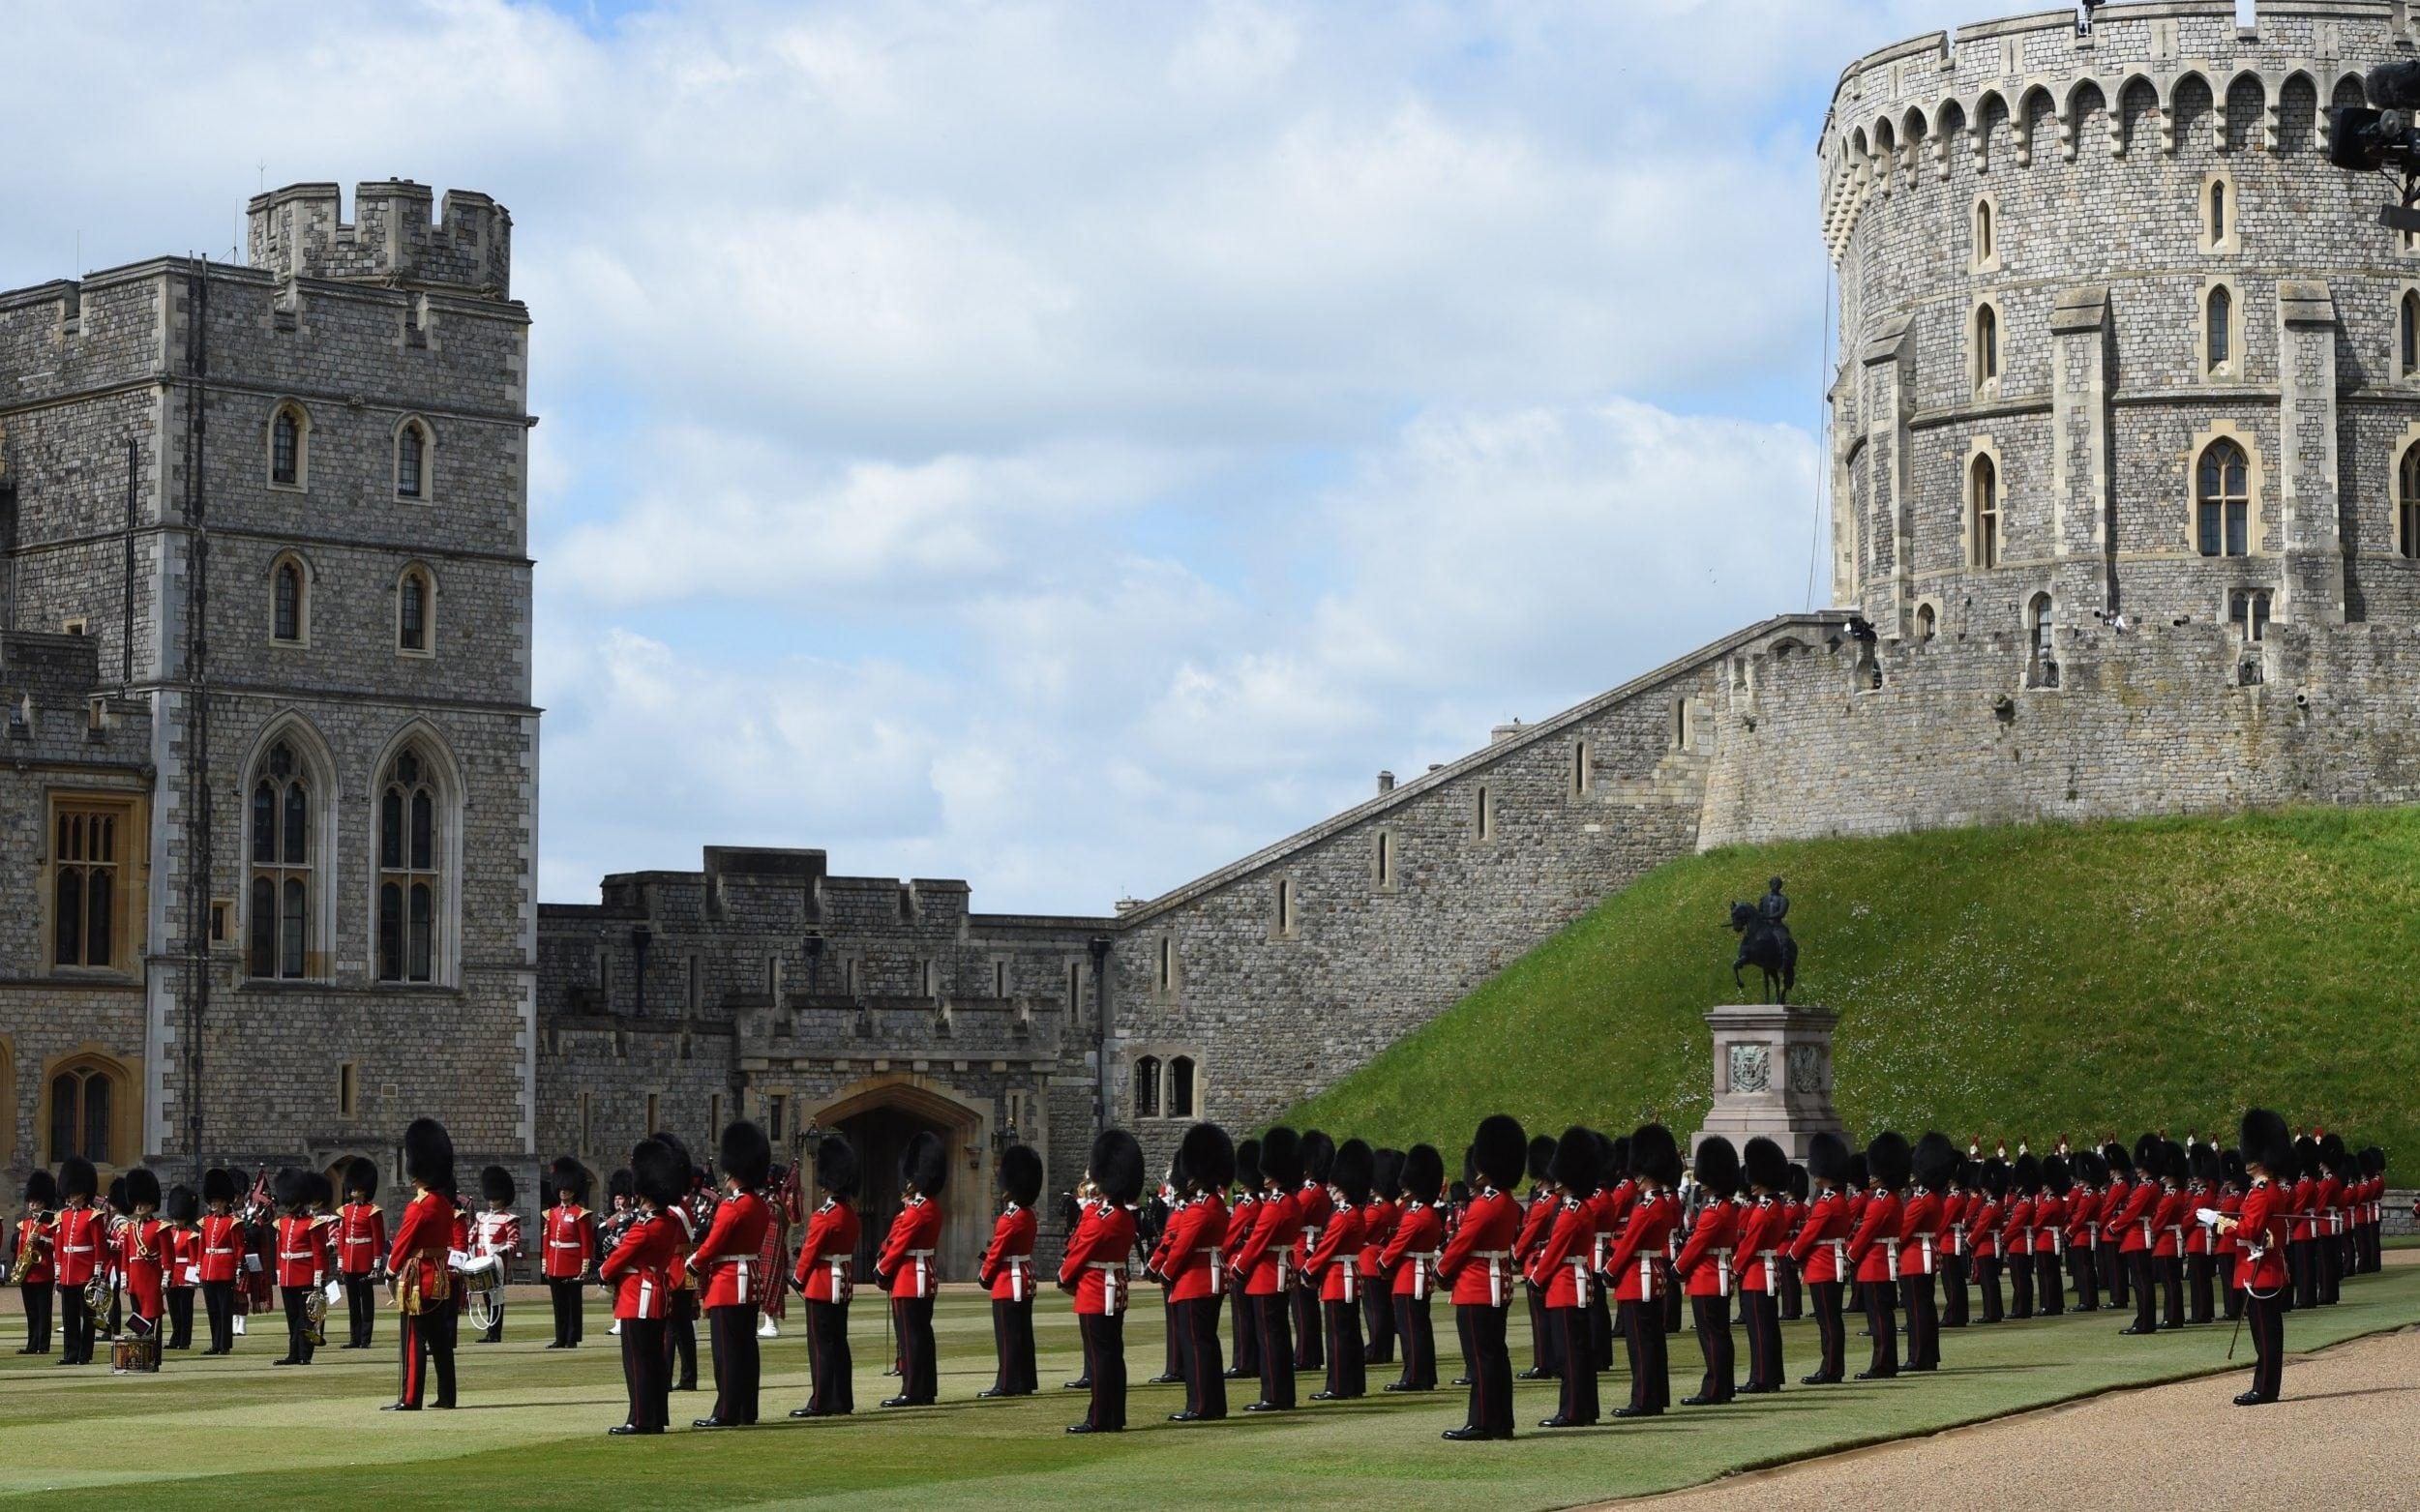 Trooping the Colour 2021: A 'memorable and uplifting day' for the Queen at Windsor Castle